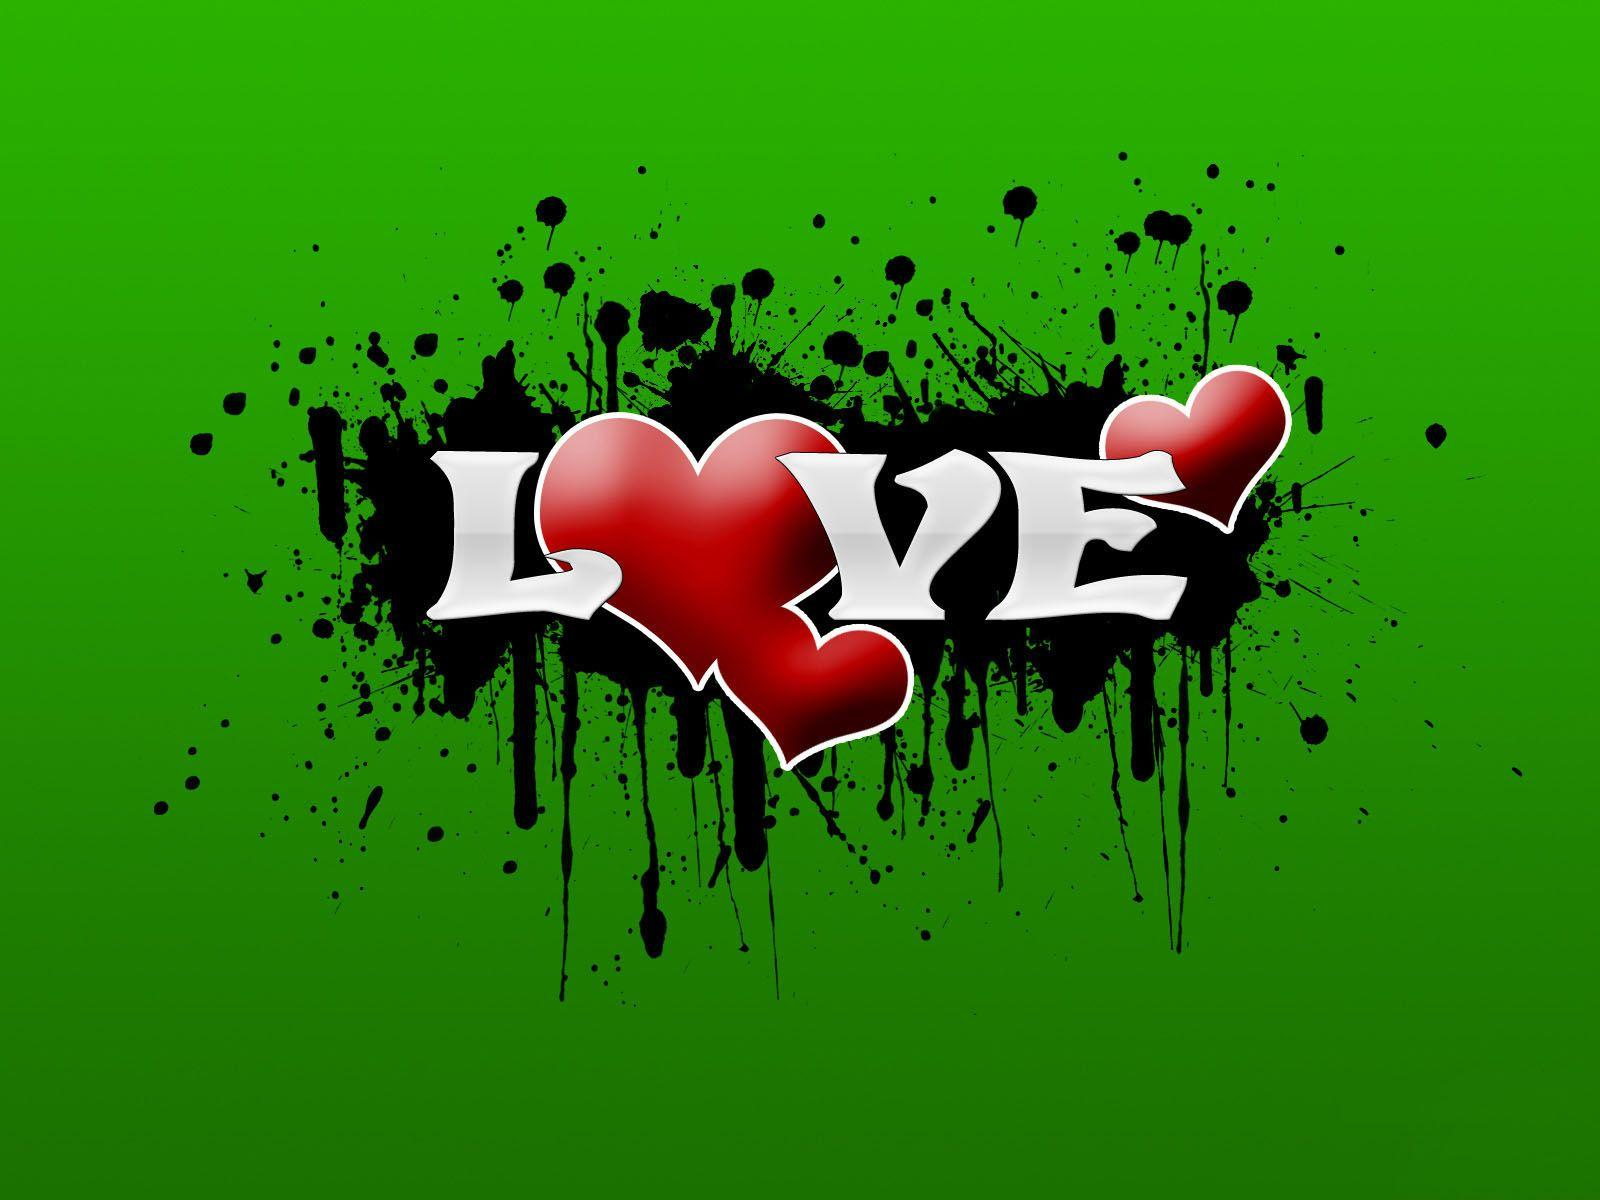 Love Hd Wallpaper Widescreen 3d : Love Wallpapers 3D - Wallpaper cave